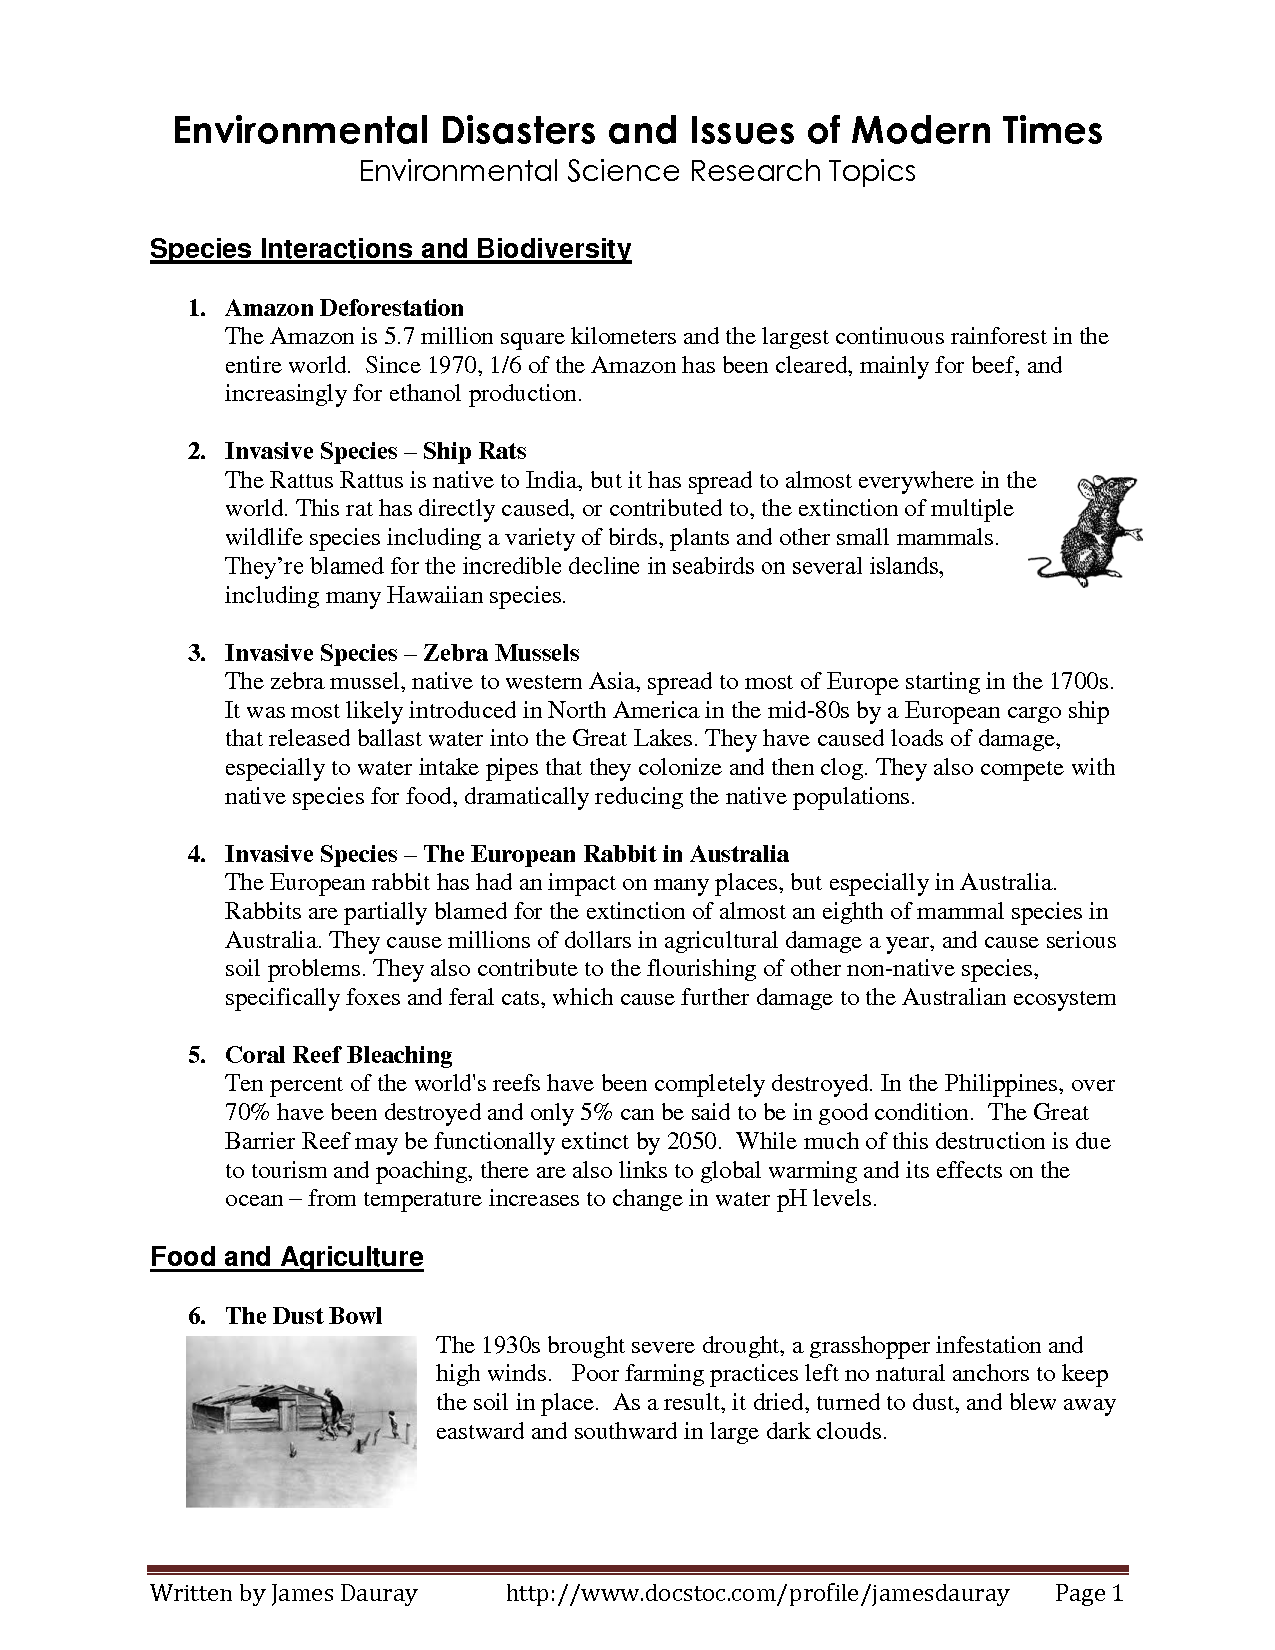 environment related research topics